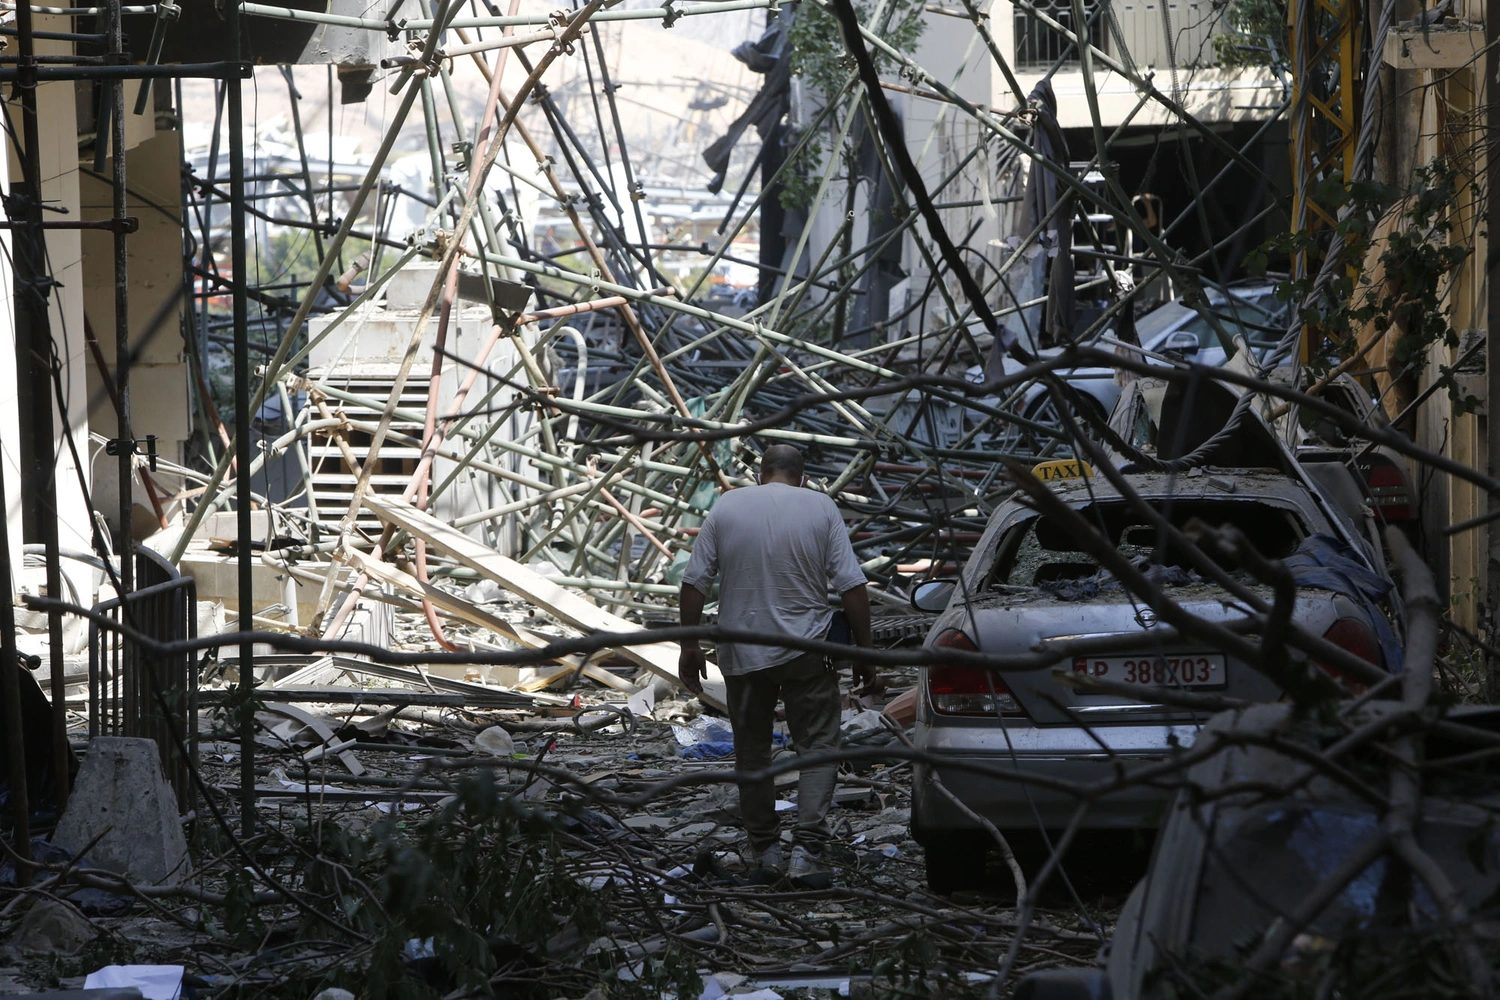 Aftermath Of Beirut Explosion, At Least 300,000 Homeless, 135 Dead